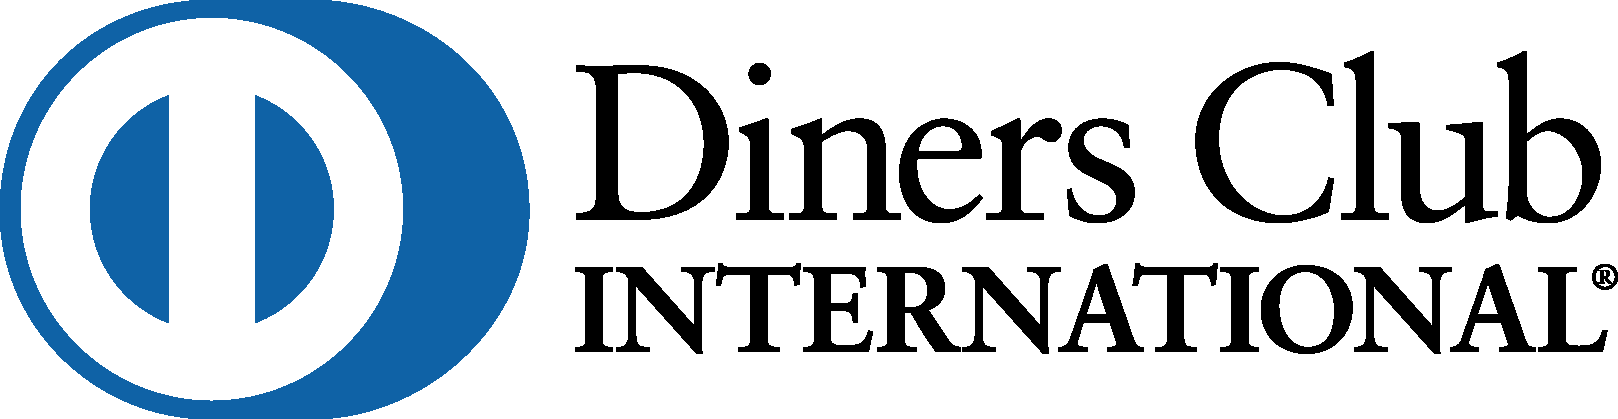 Diners Club Payment Network Card Association Logo